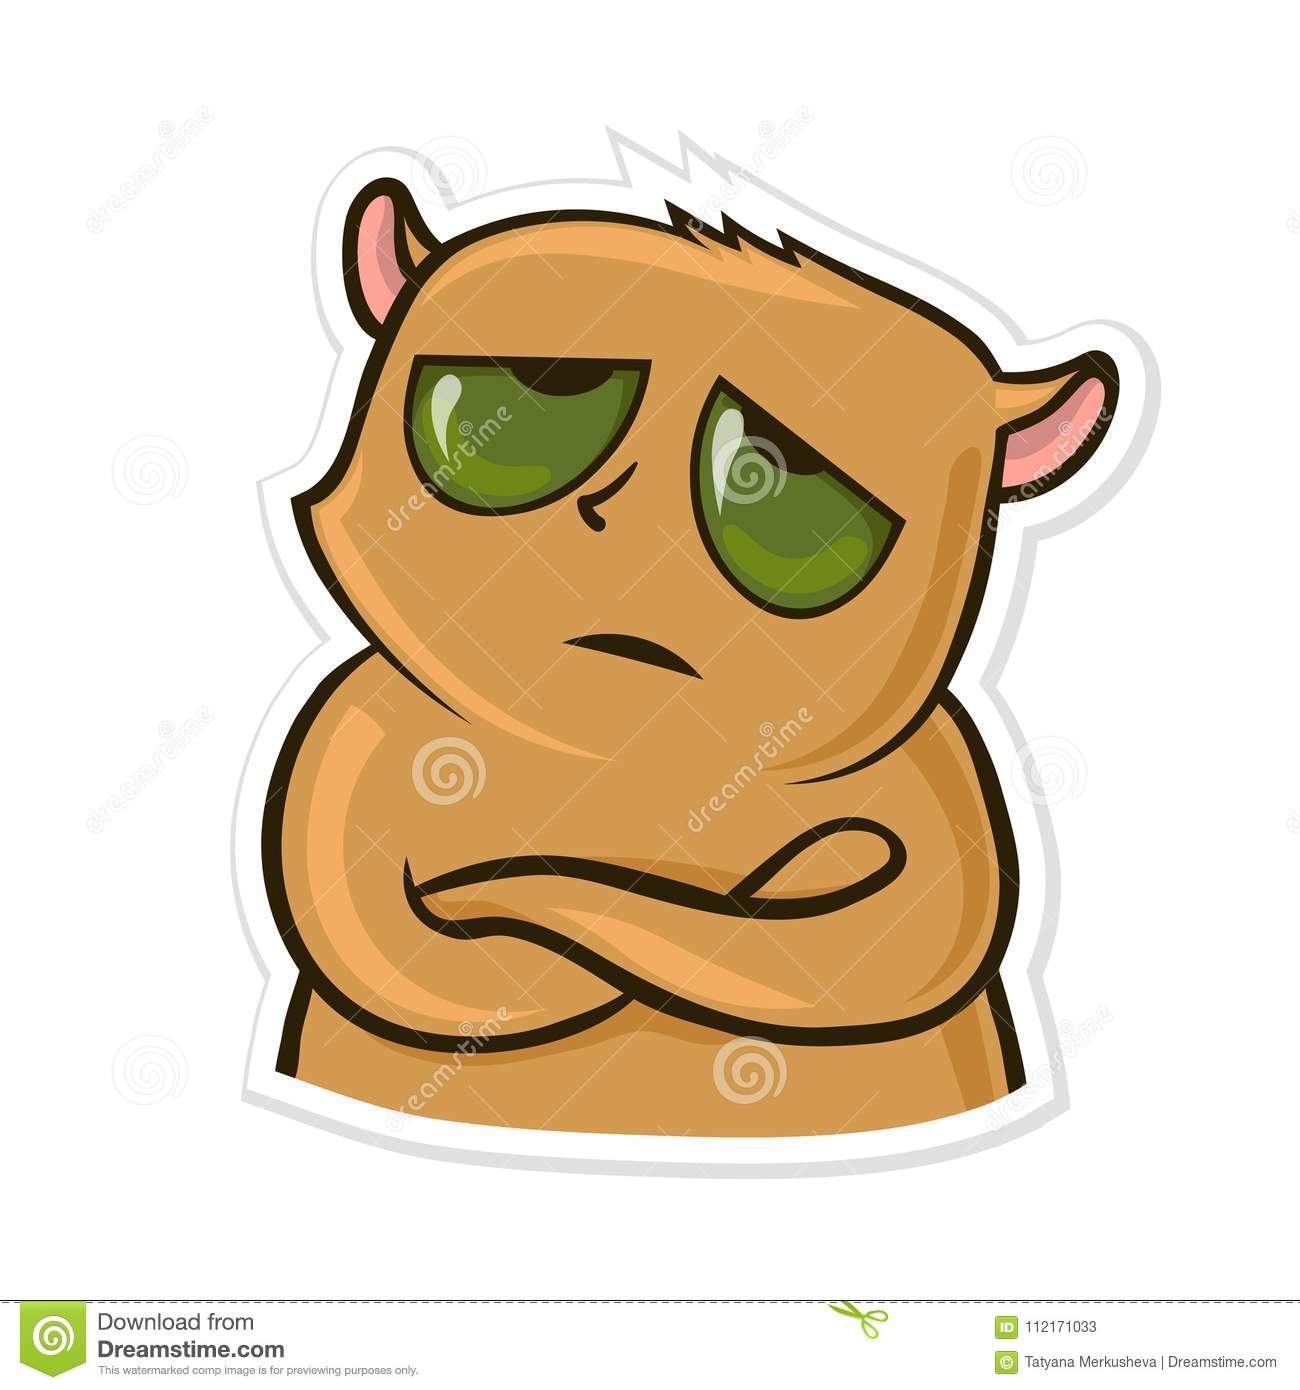 Sticker for messenger with funny animal. Tired or upset hamster. Vector illustration, isolated on white.